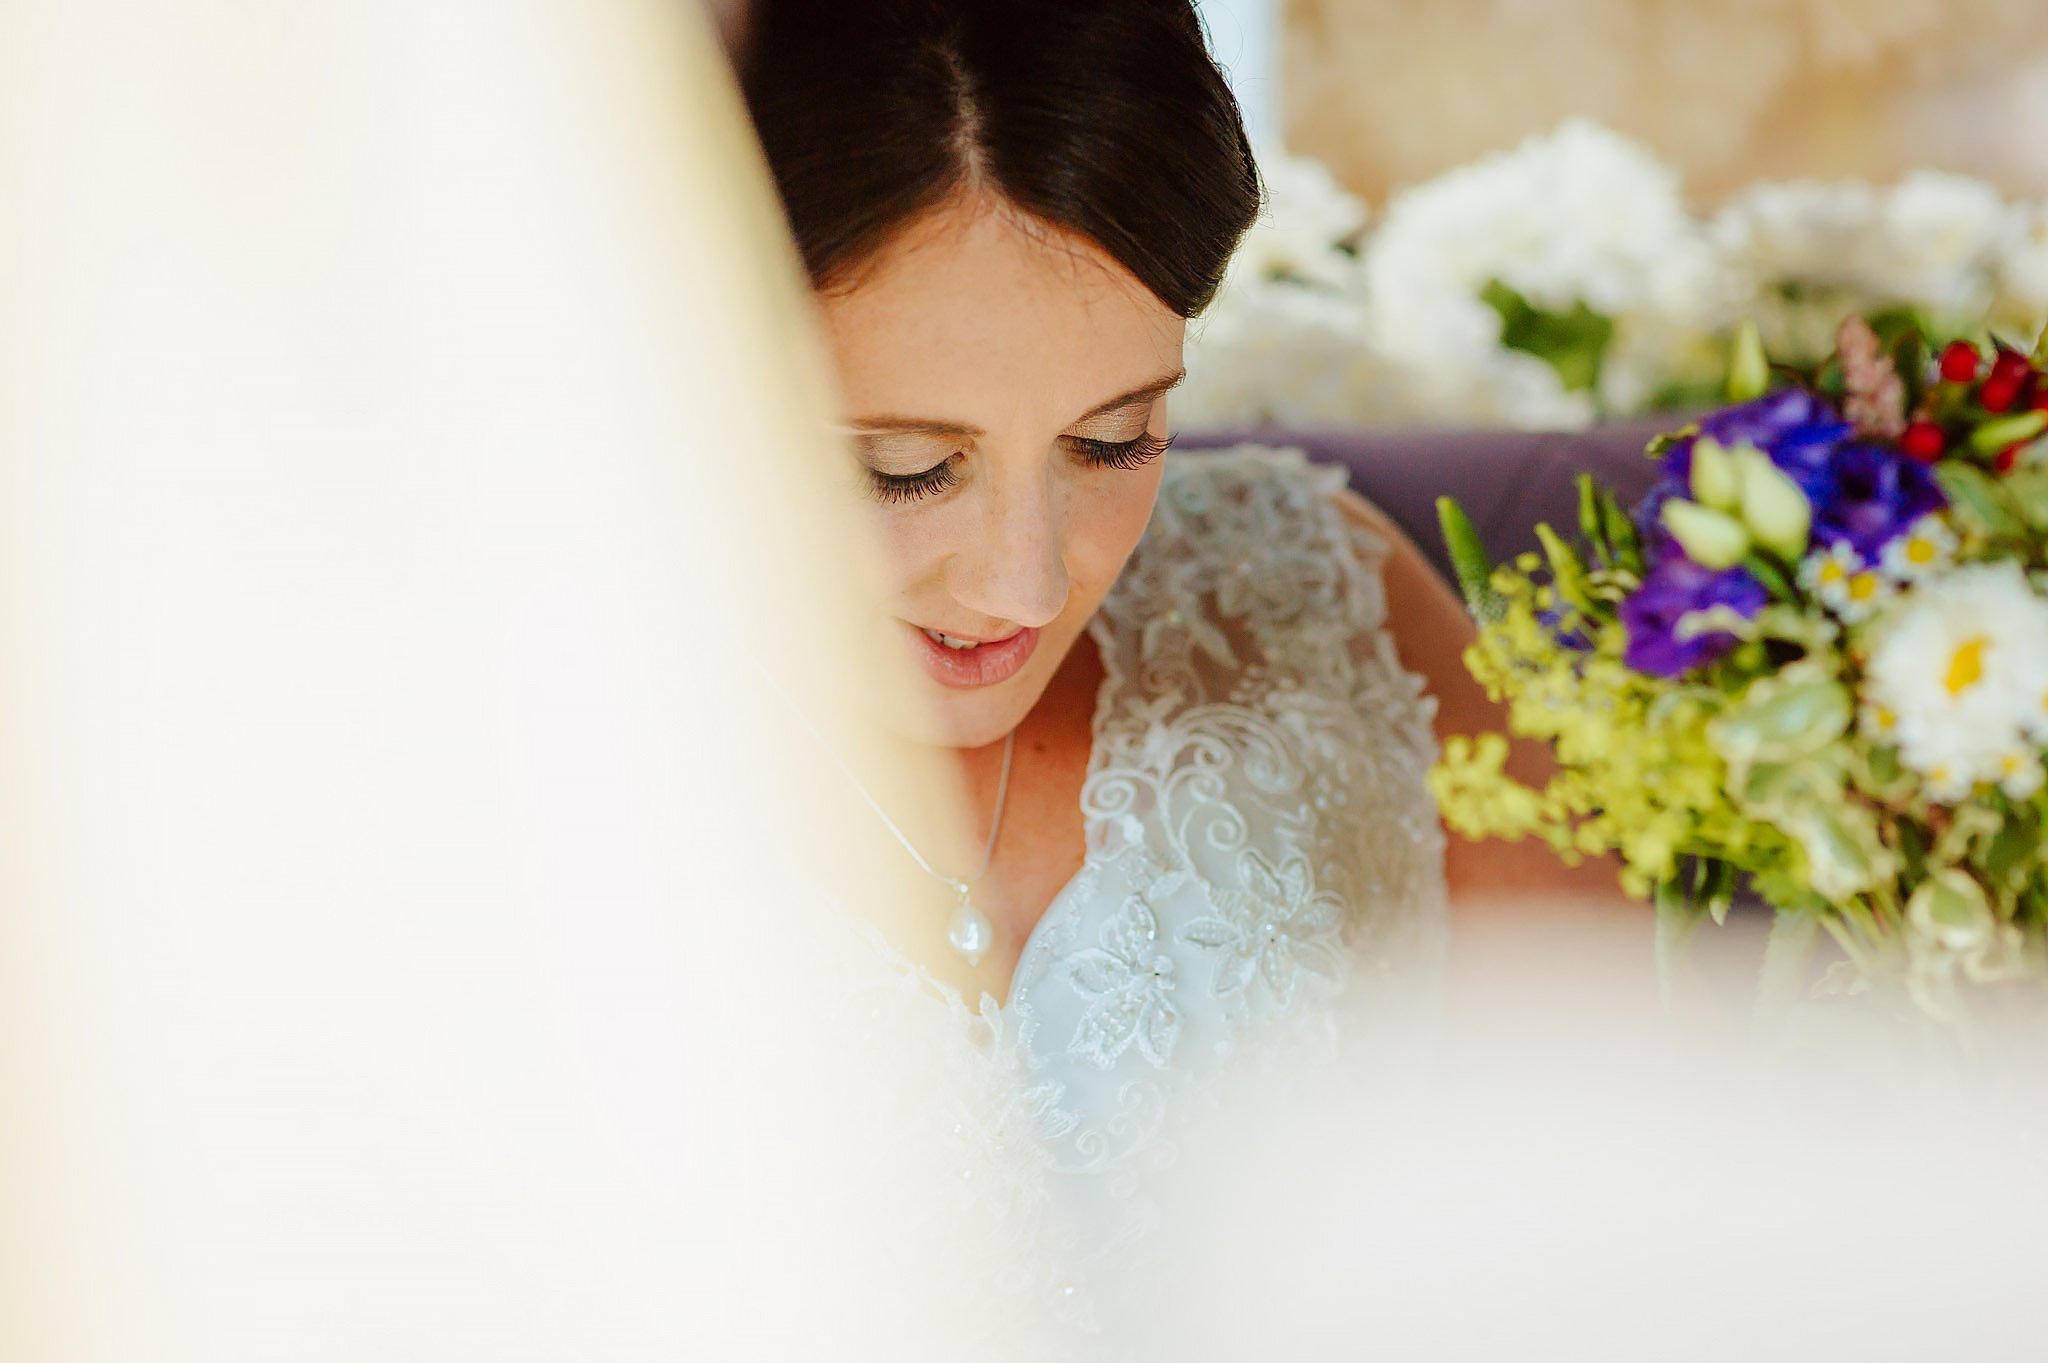 Wedding photography at Hellens Manor in Herefordshire, West Midlands | Shelley + Ian 21